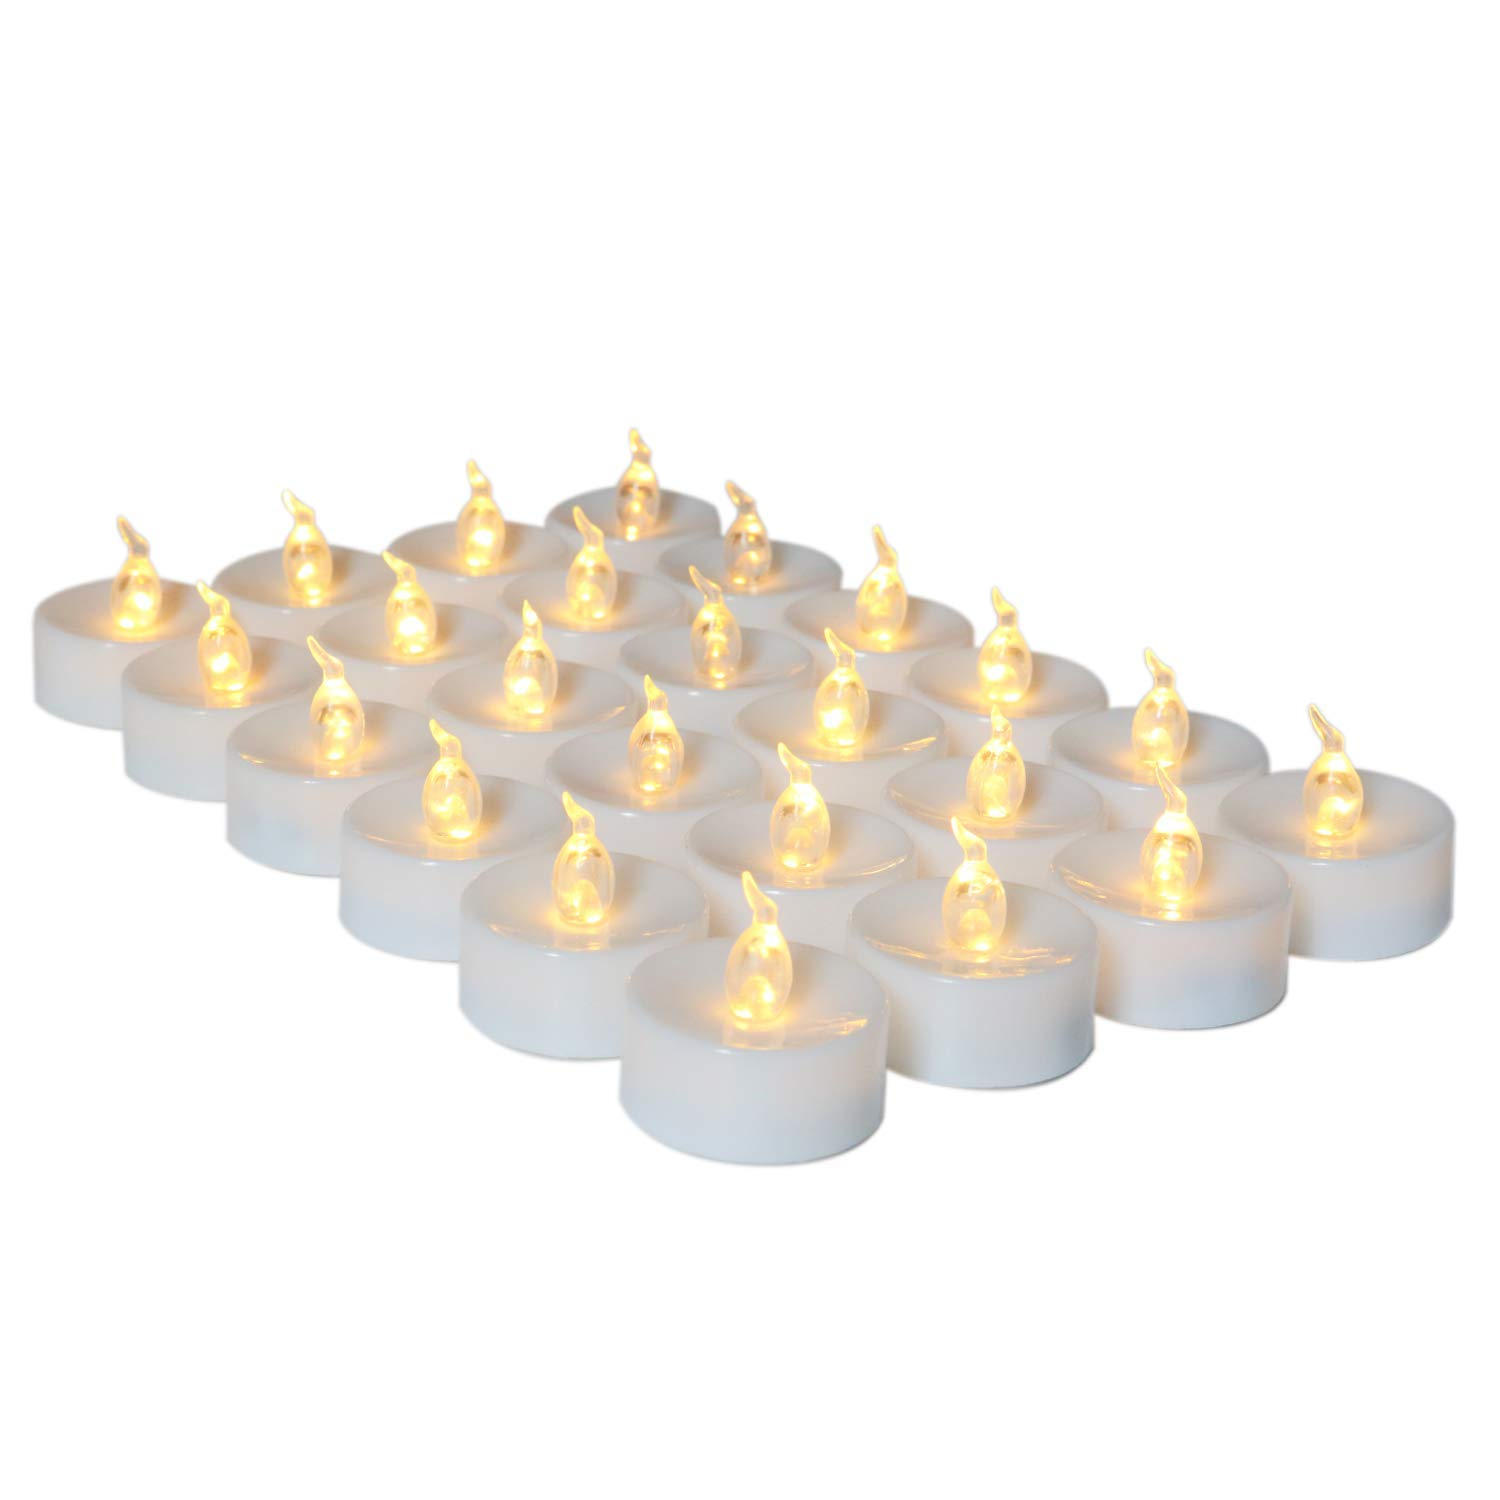 Buy 100 X Flameless Light LED warm white Tealight Flameless